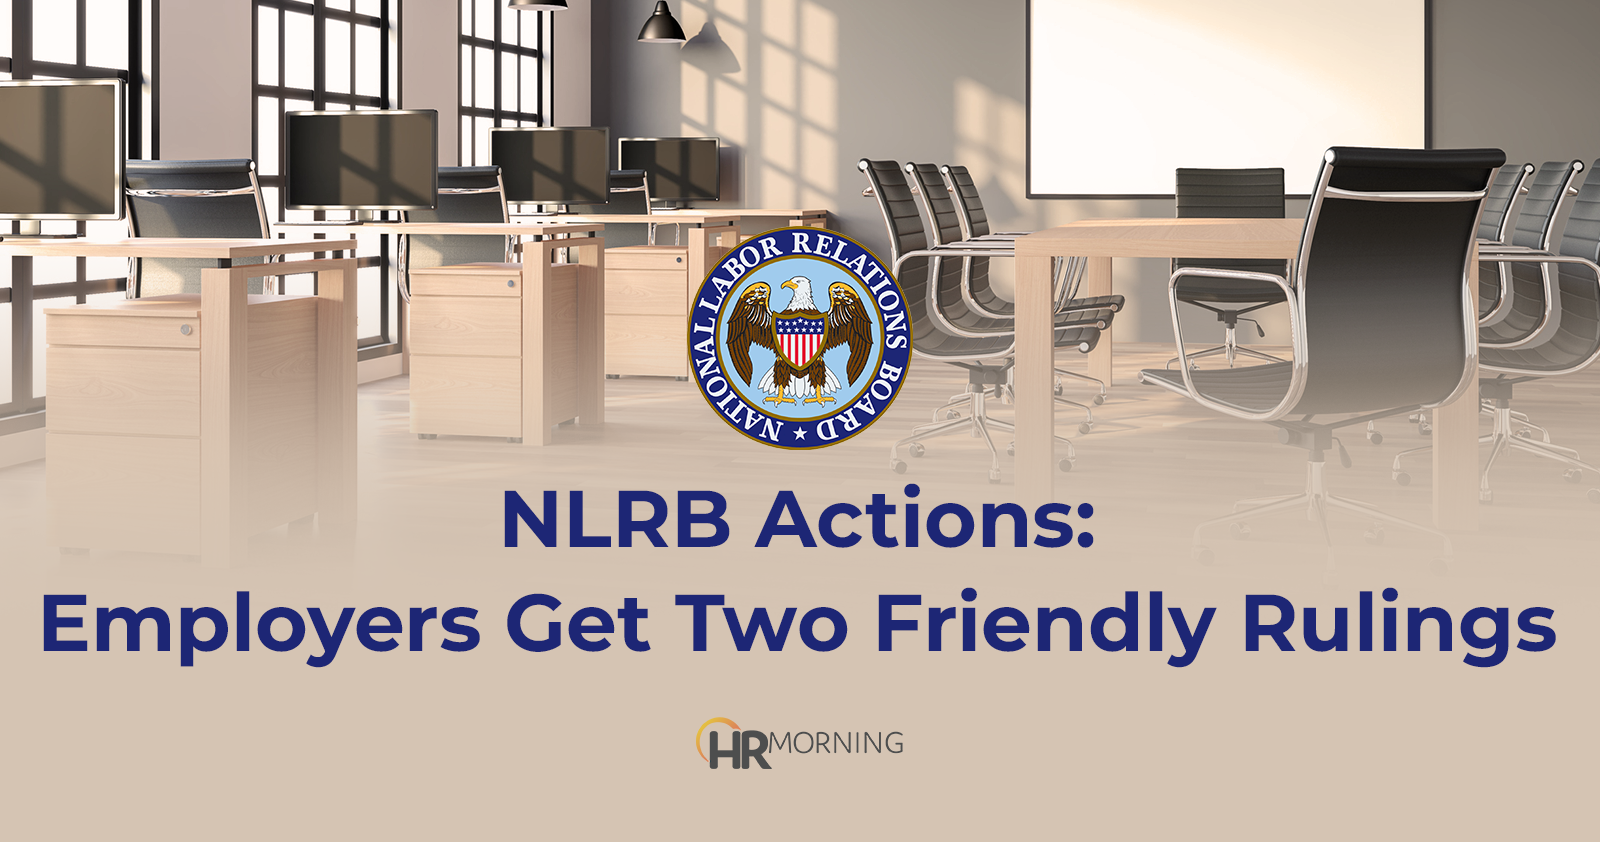 NLRB actions: Employers get two friendly rulings